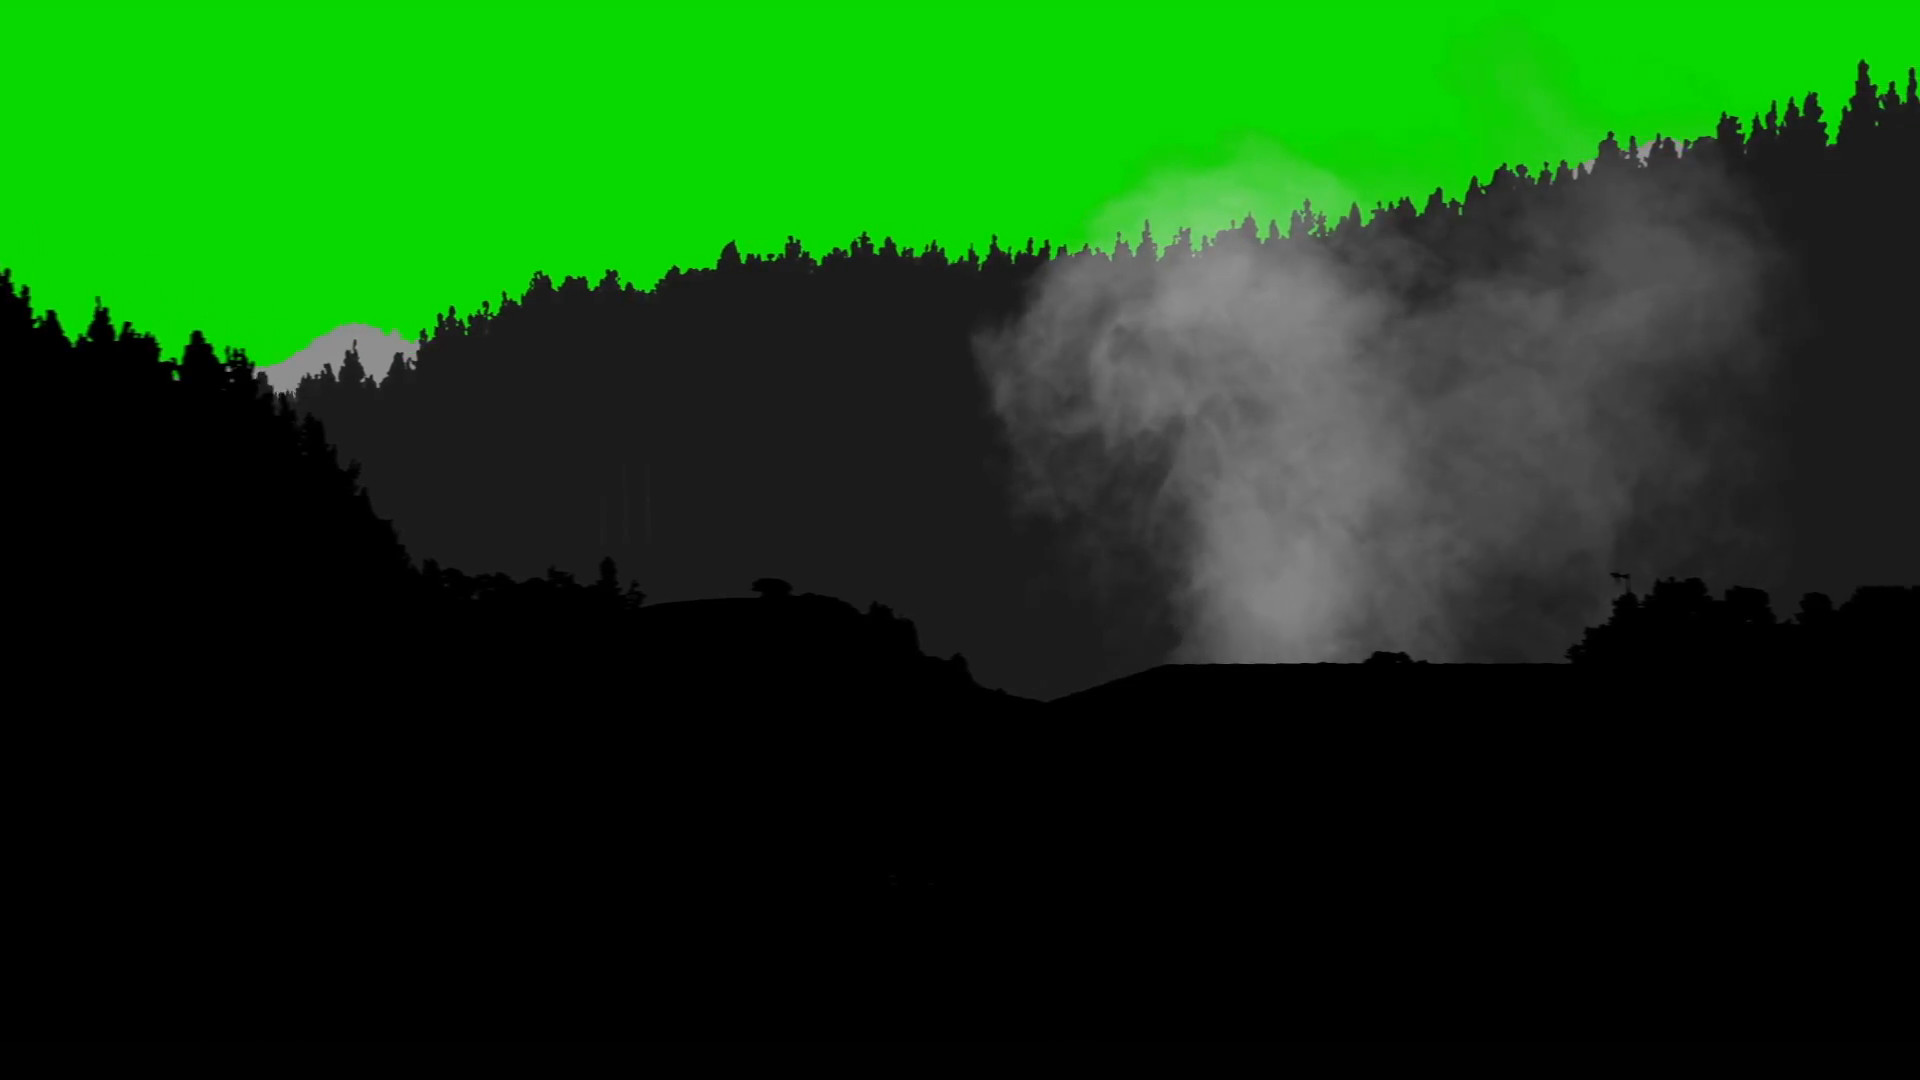 Silhouette Of Forest Hills Cats and Smoke on a Green Screen Background  Motion Background – VideoBlocks